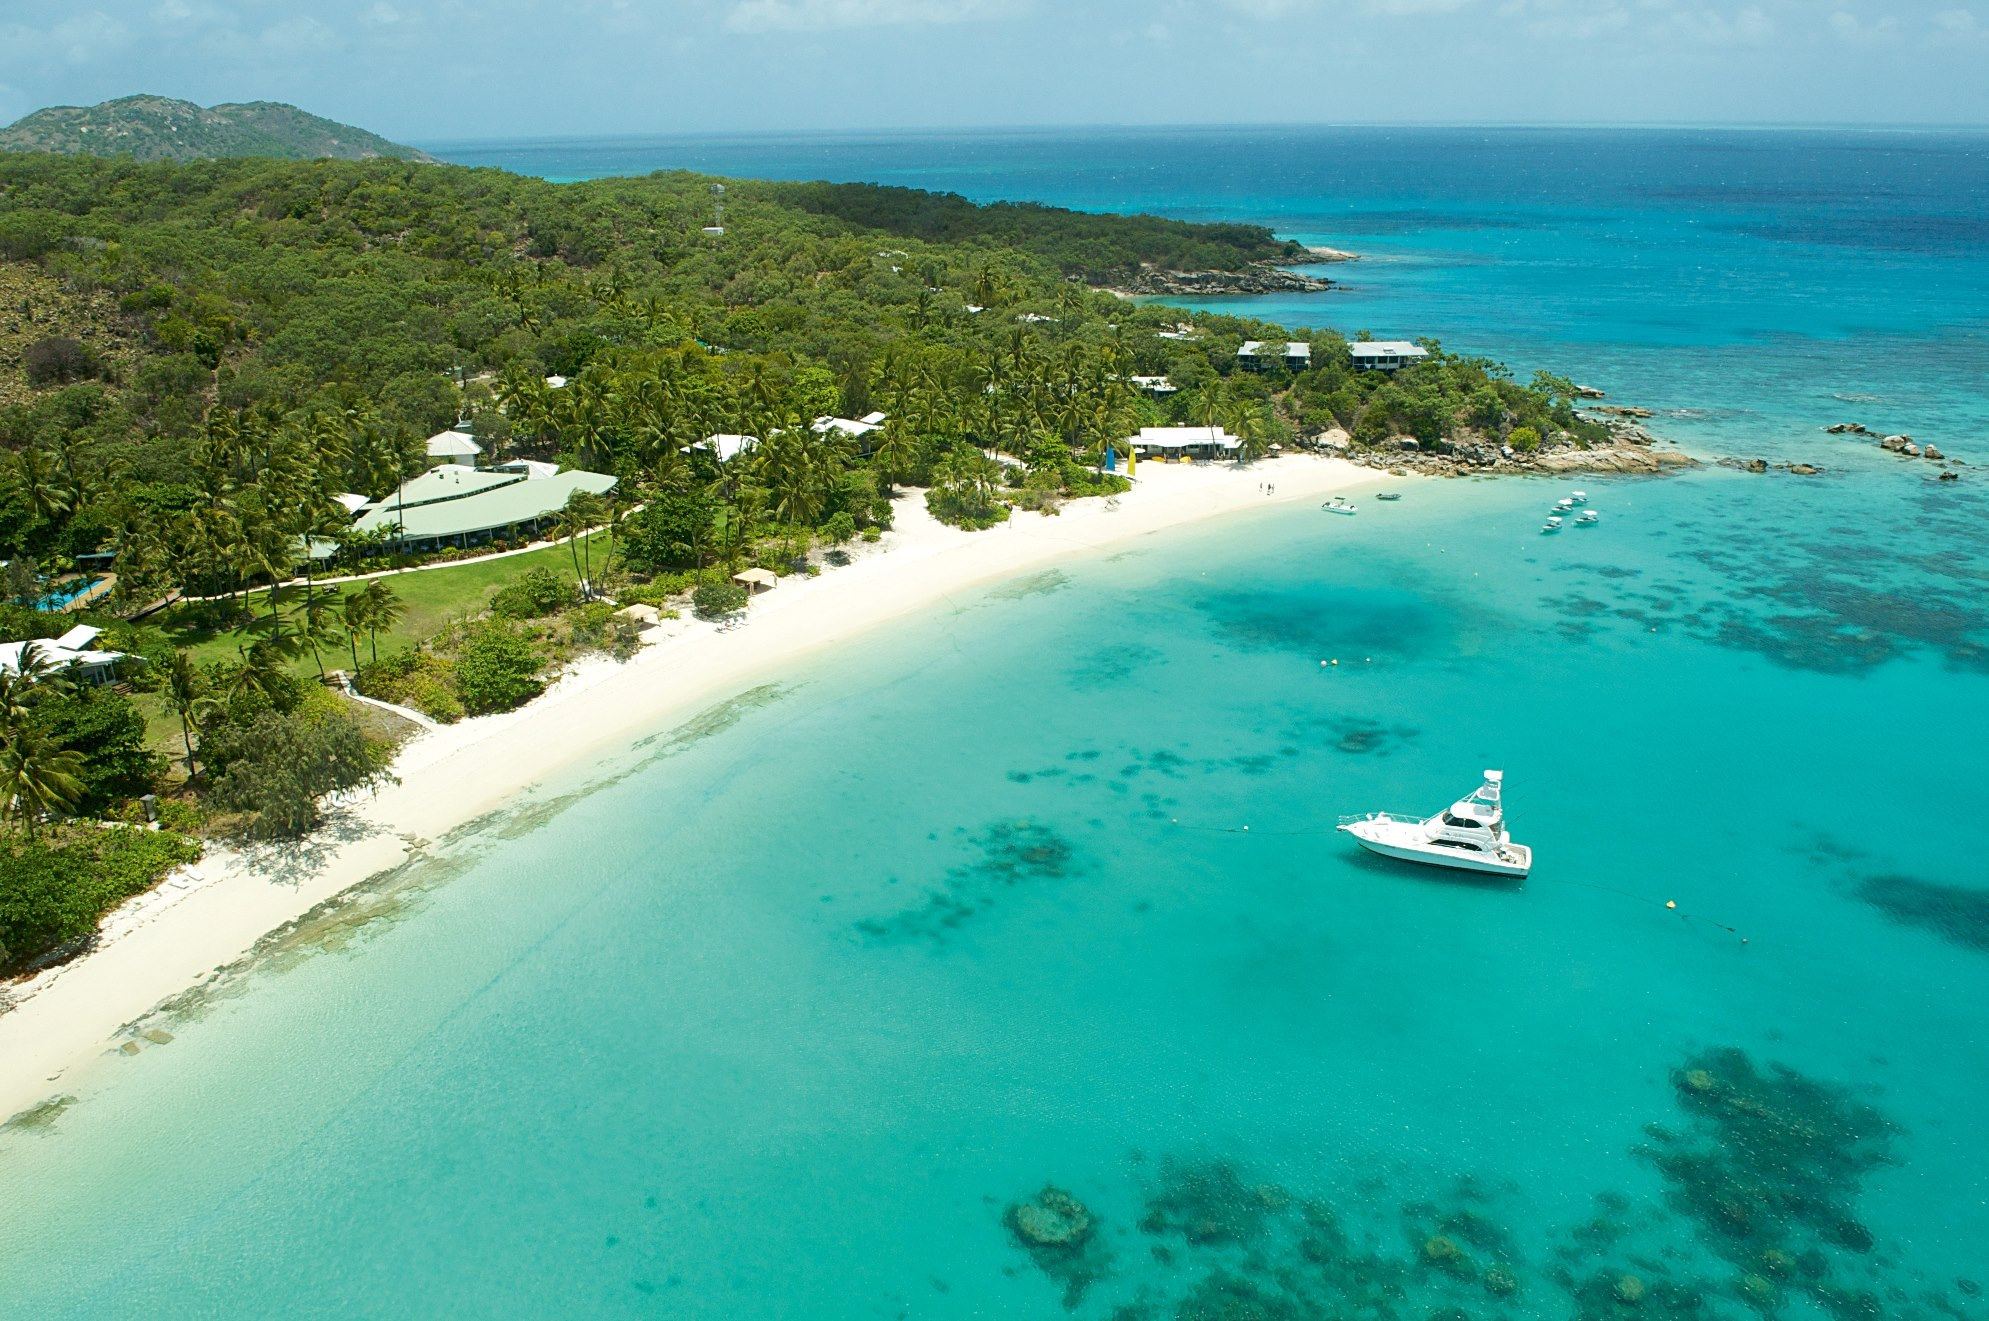 Private island resorts, Lizard island